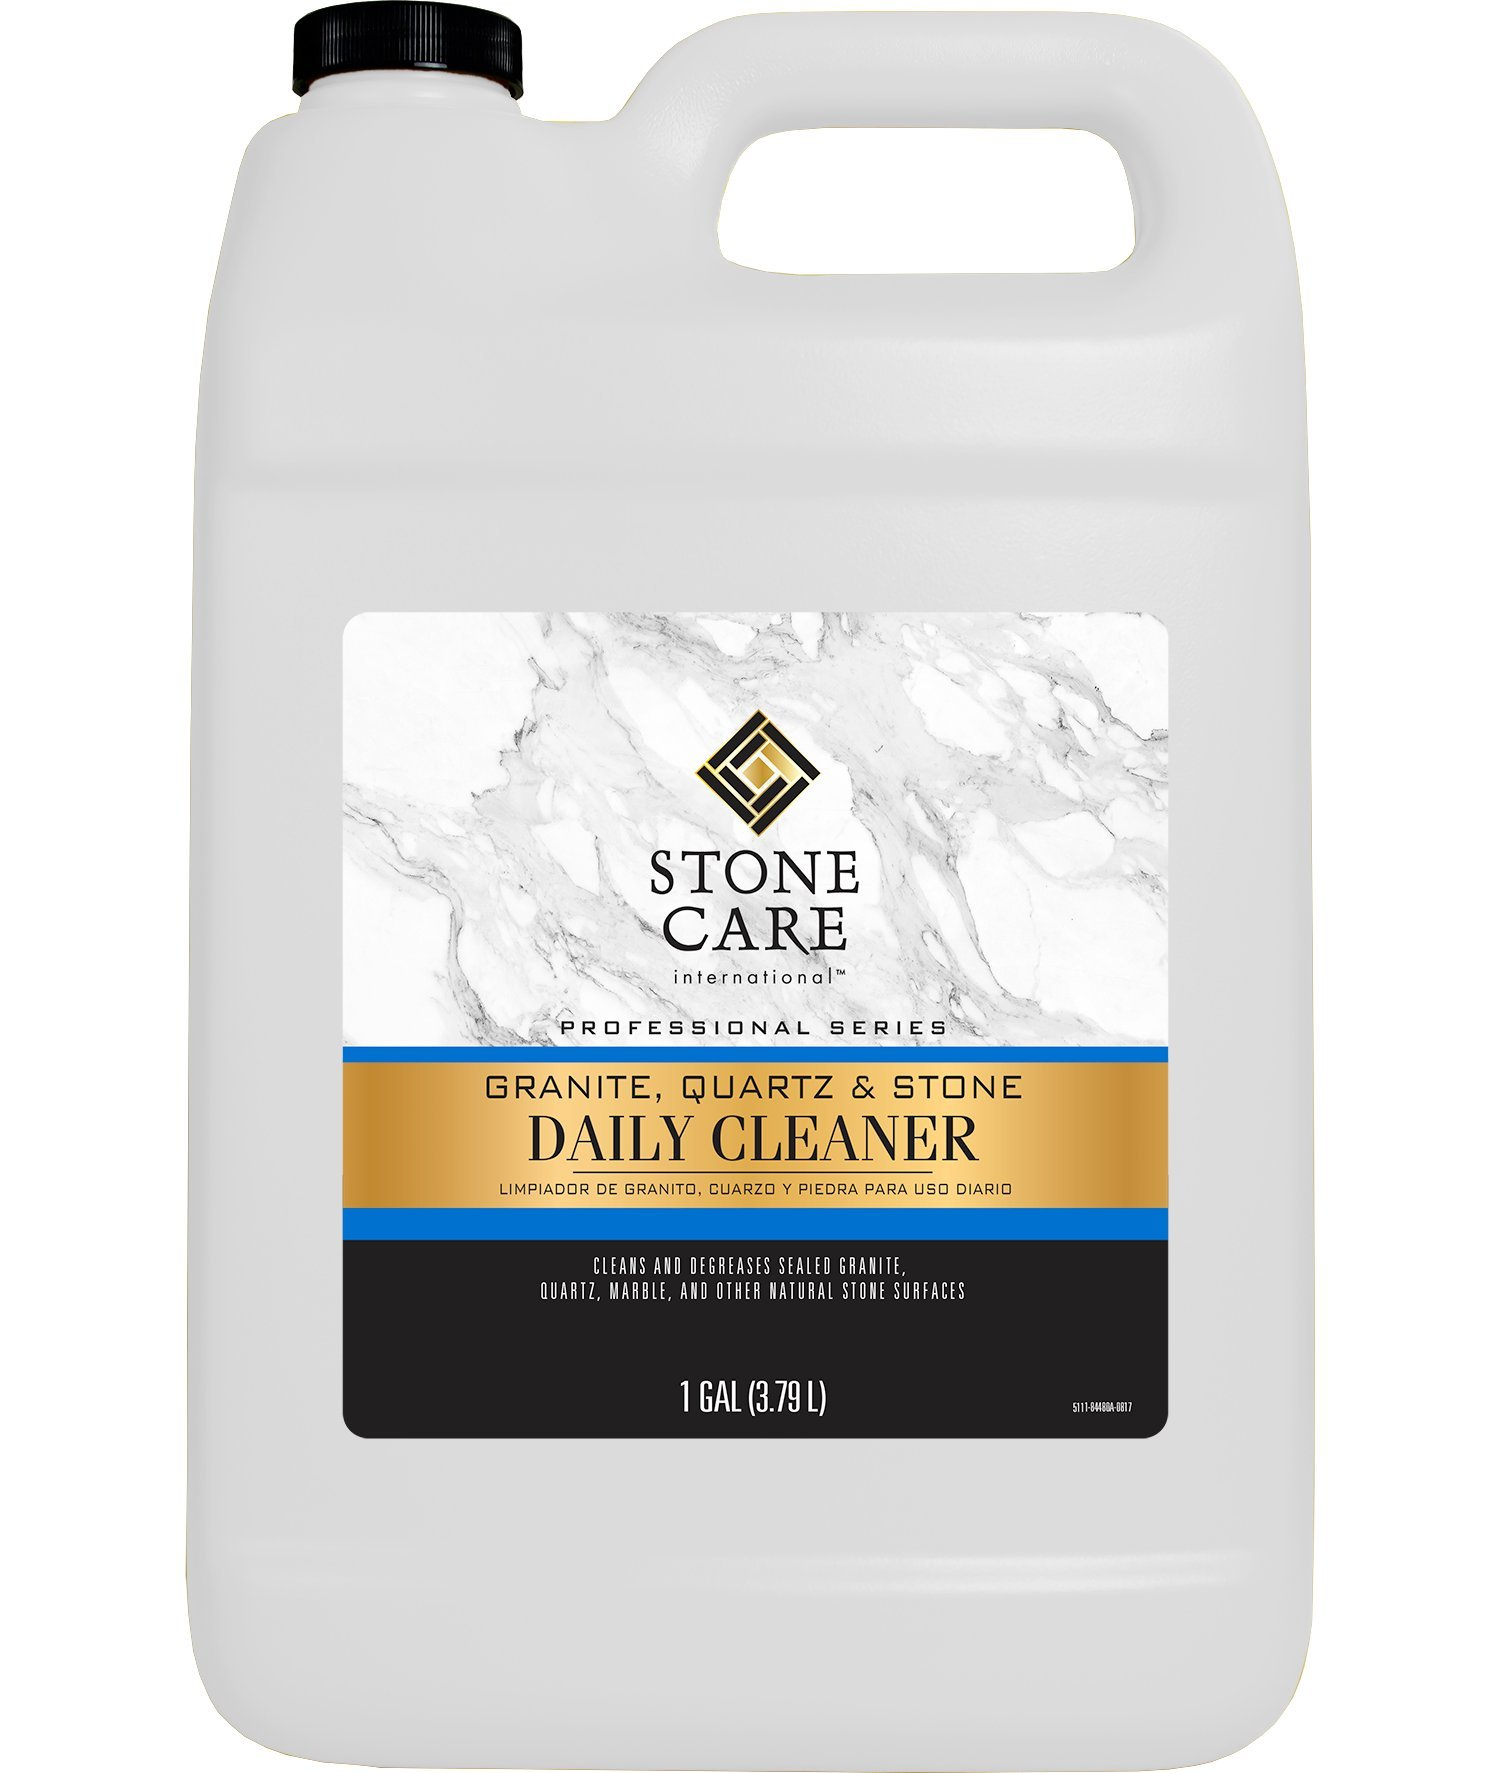 Stone Care International [1 Gallon] Granite Quartz Stone Daily Cleaner - Clean and De-Grease Natural Stones with Streak Free Finish - 1 Gallon